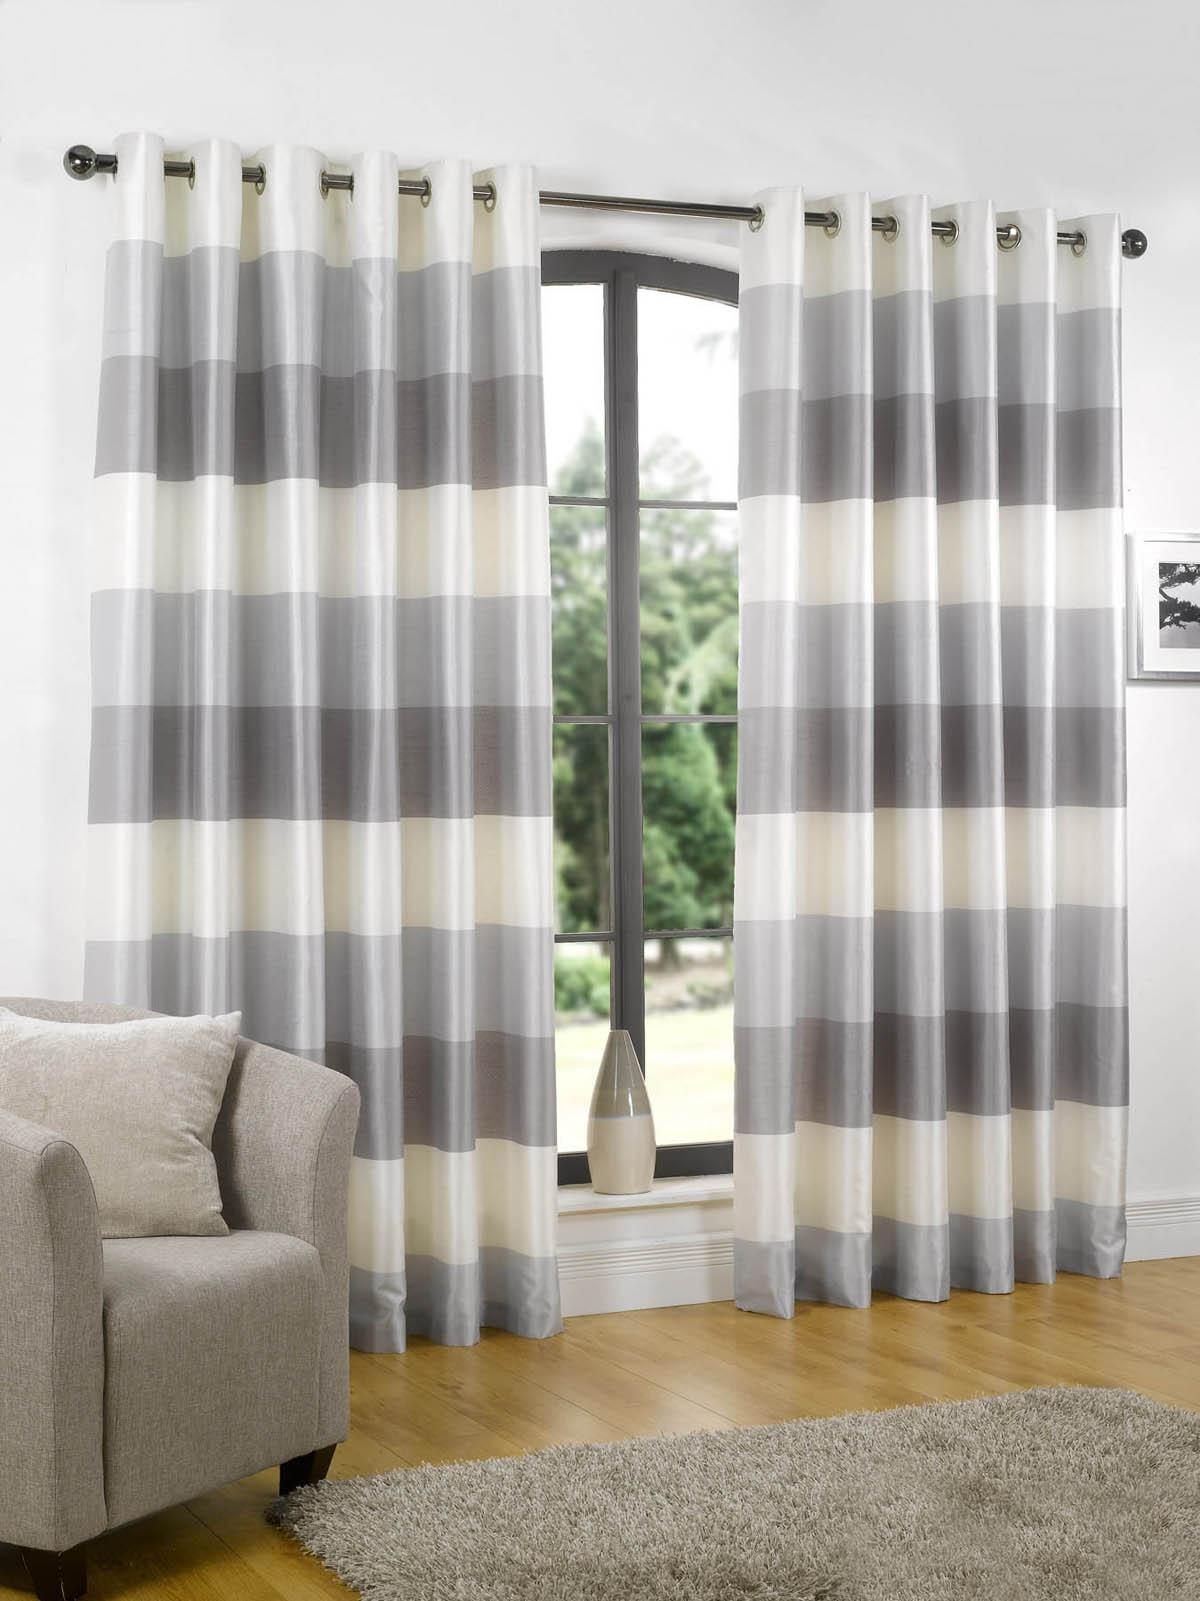 Amusing striped curtains with long curtain and nightlamps also single sofa combined with fluufy rug and lowes mini table